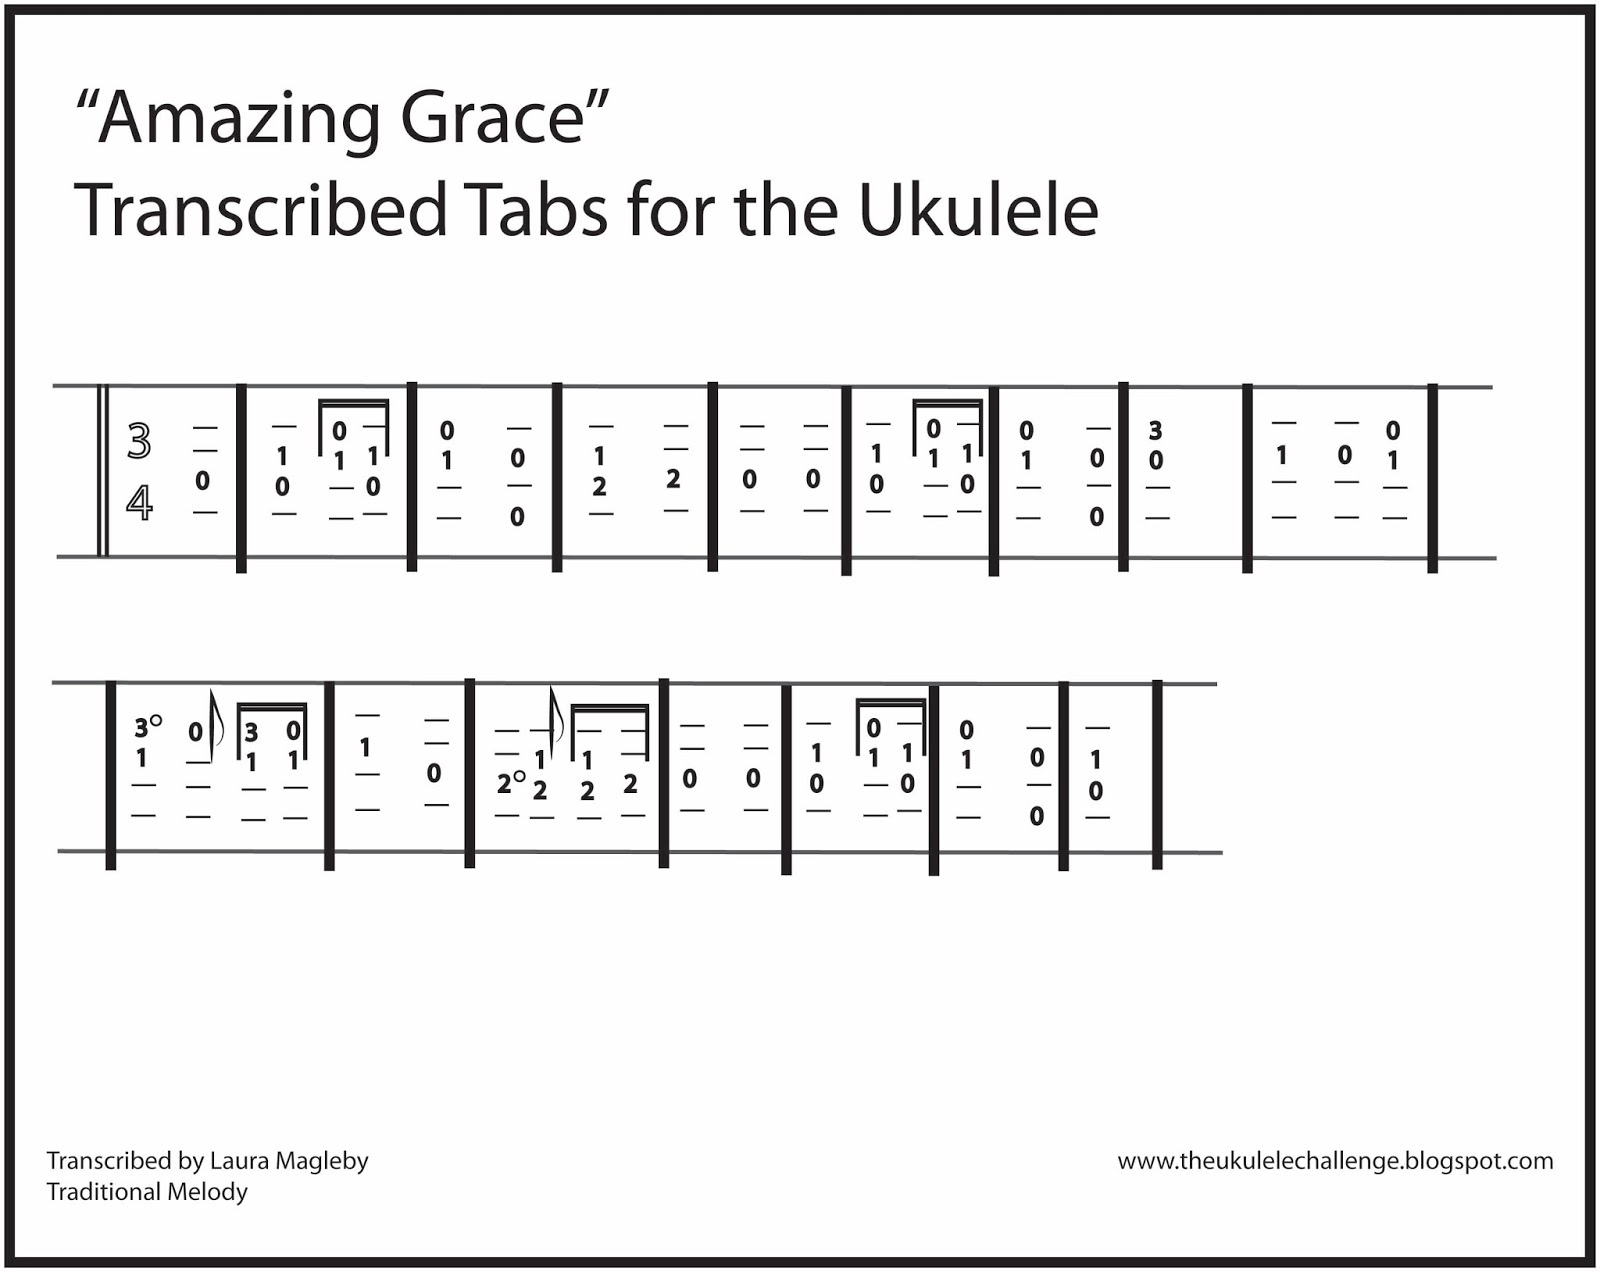 The Ukulele Challenge: u0026quot;Amazing Graceu0026quot; for the Ukulele